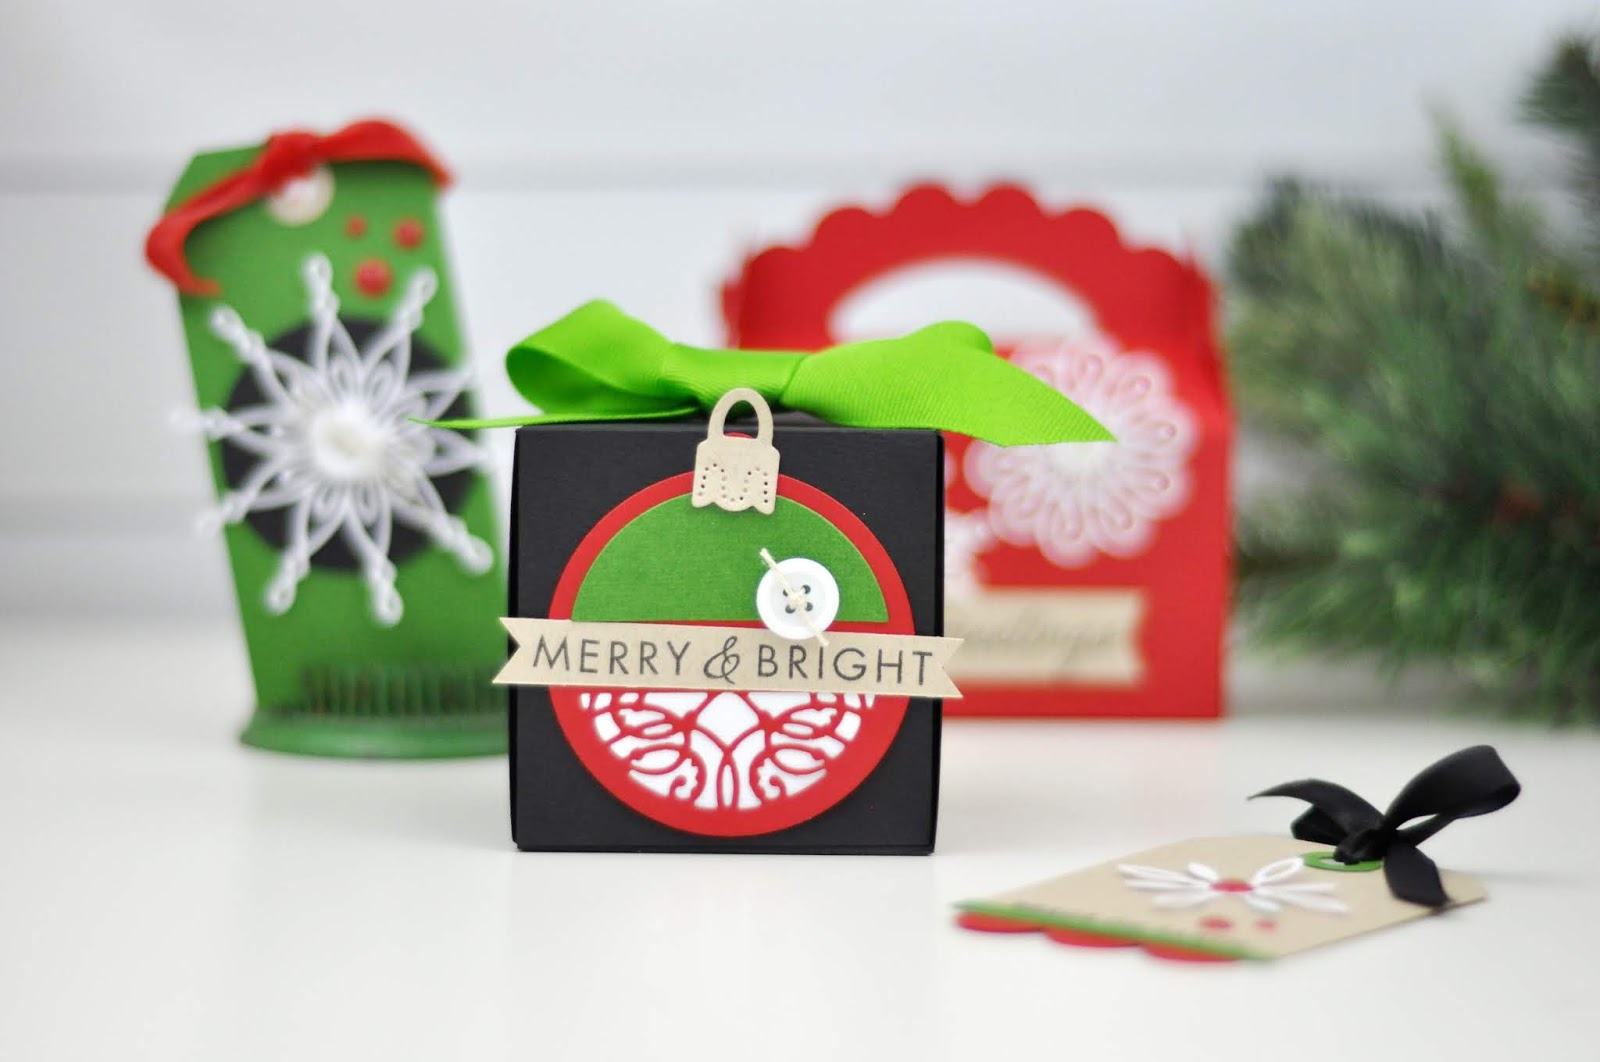 Spellbinders Christmas Tags, Cards, and Gift Boxes